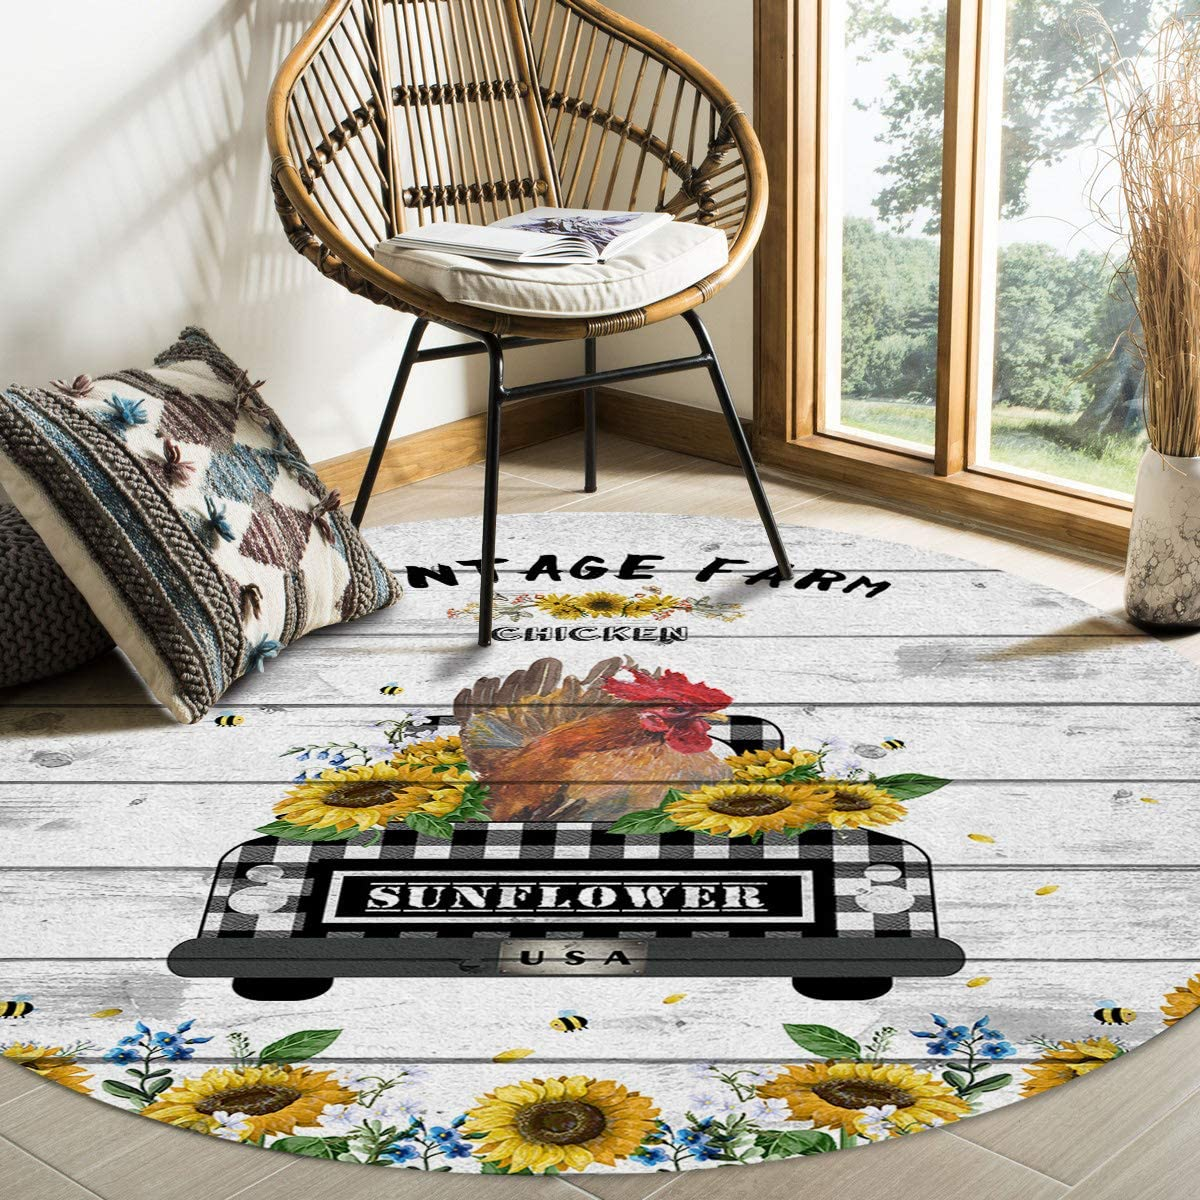 Round Credence Area Rugs Vintage Farm Chicken El Paso Mall Living Room Be Soft Indoors